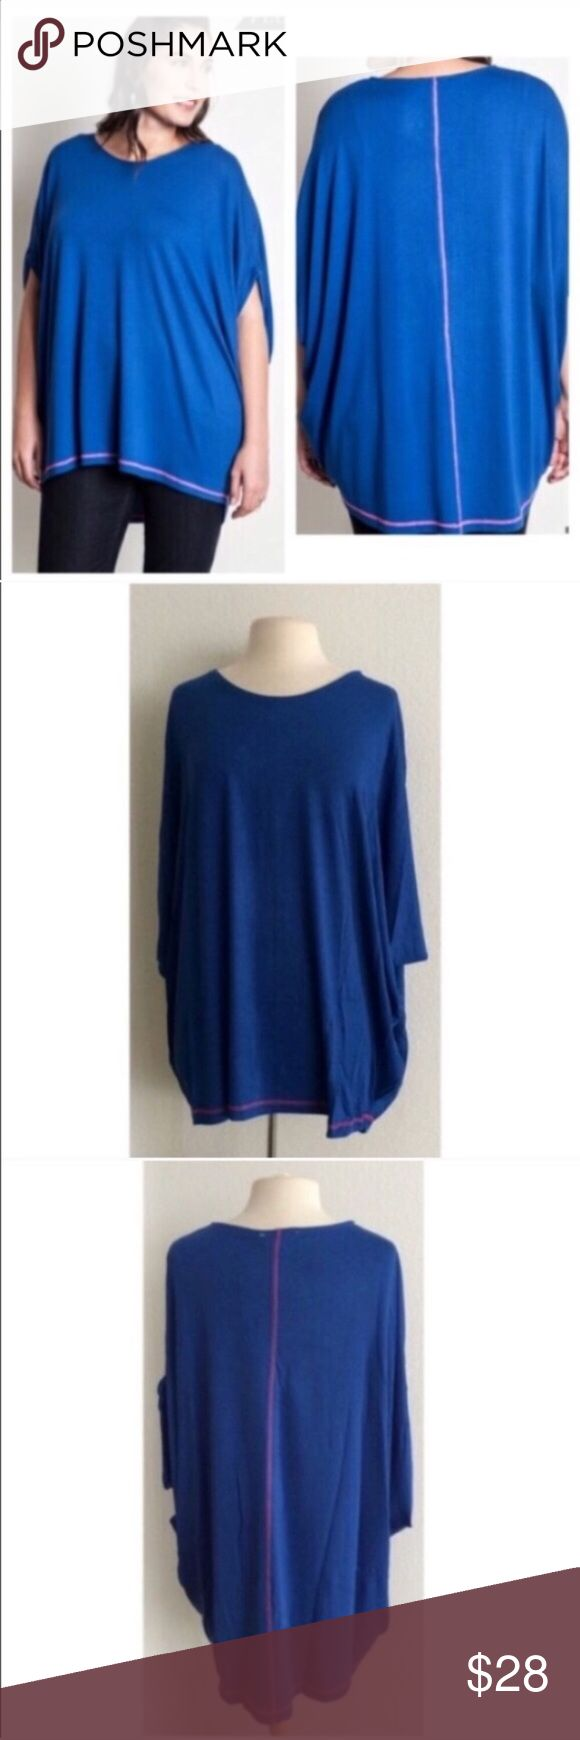 "(Plus) Blue batwing top Blue batwing top  Length- approx 32""  Materials- 65% cotton/ 35% polyester. This is a pretty thick top and it is extremely versatile. It can be dressed up or dressed down. Runs slightly large.  Availability- XL•1x • 1•1 ⭐️This item is brand new from manufacturer without tags.  🚫NO TRADES 💲Price is firm unless bundled 💰Ask about bundle discounts Tops"